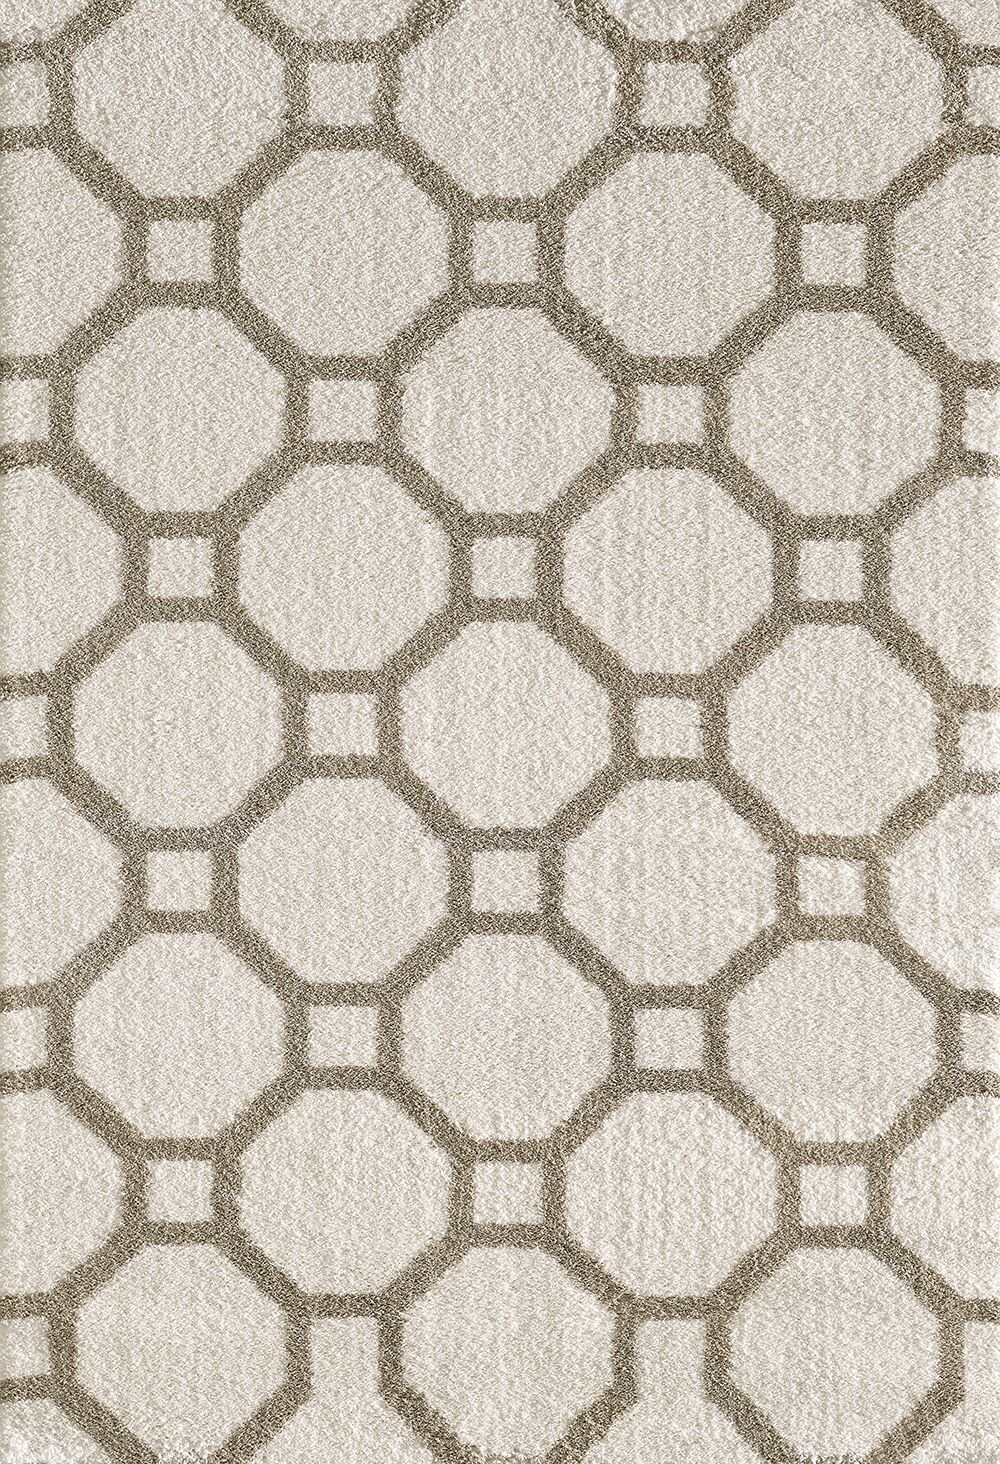 Lowes White/Beige Area Rug Rug Size: Rectangle 3'11